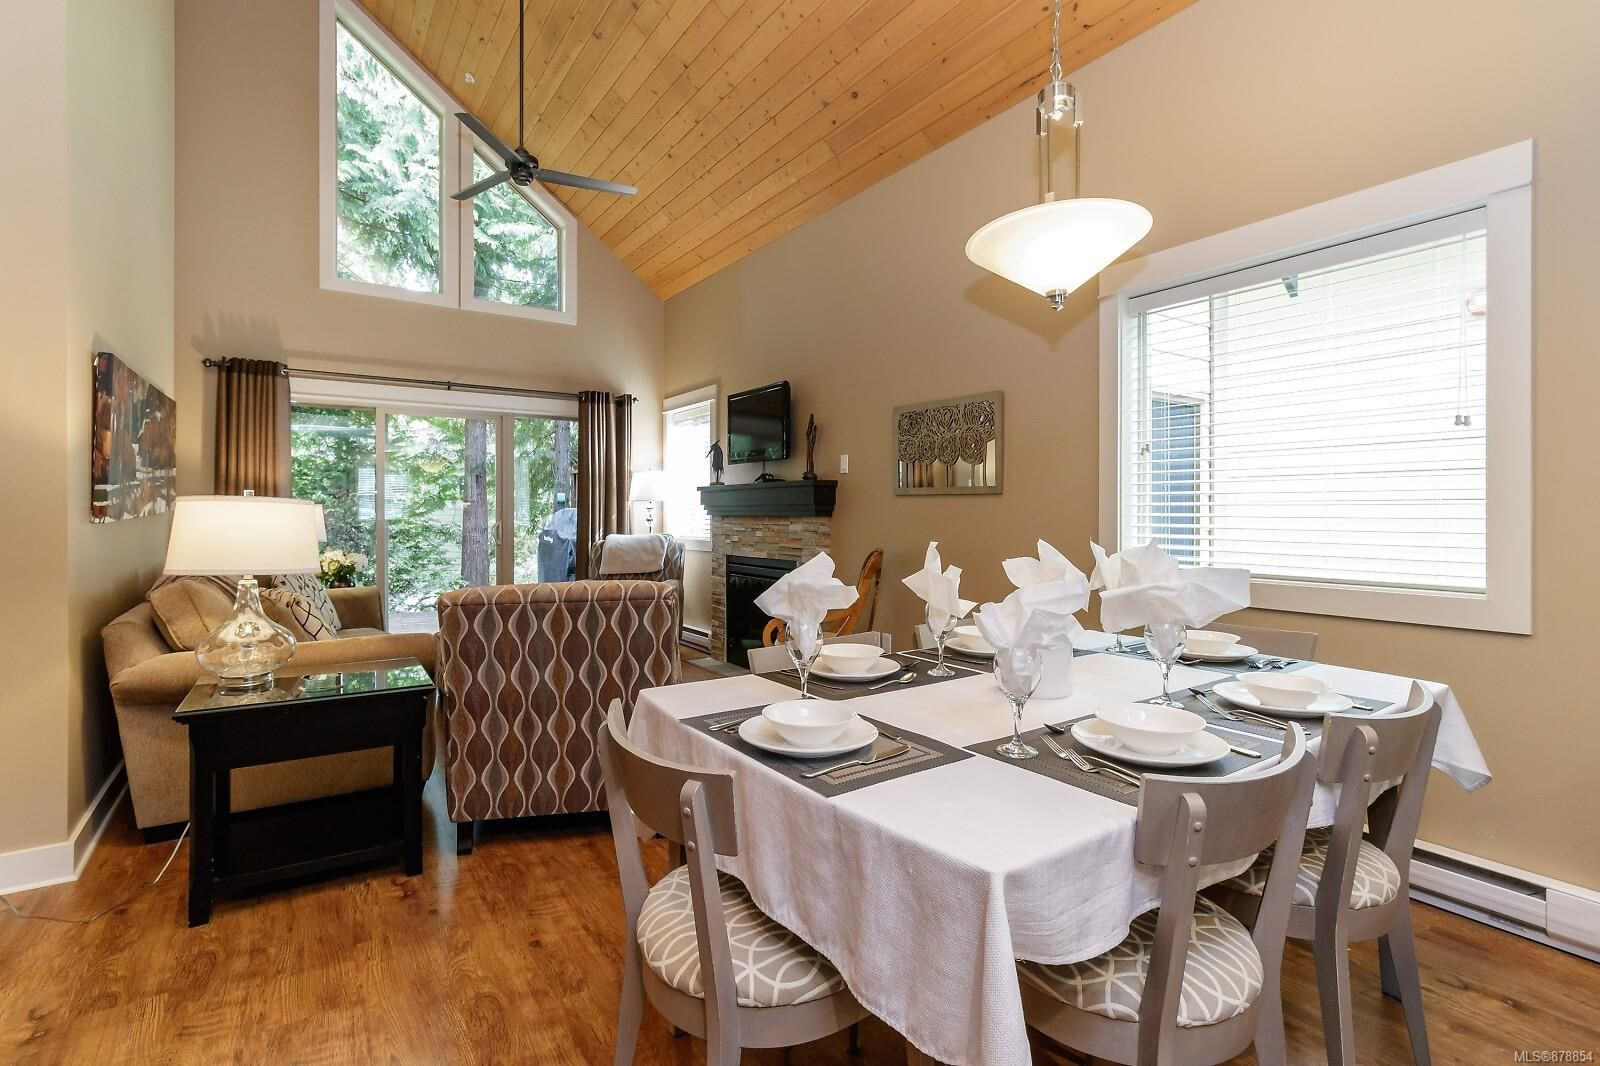 Photo 6: Photos: 223 1130 Resort Dr in : PQ Parksville Row/Townhouse for sale (Parksville/Qualicum)  : MLS®# 878854